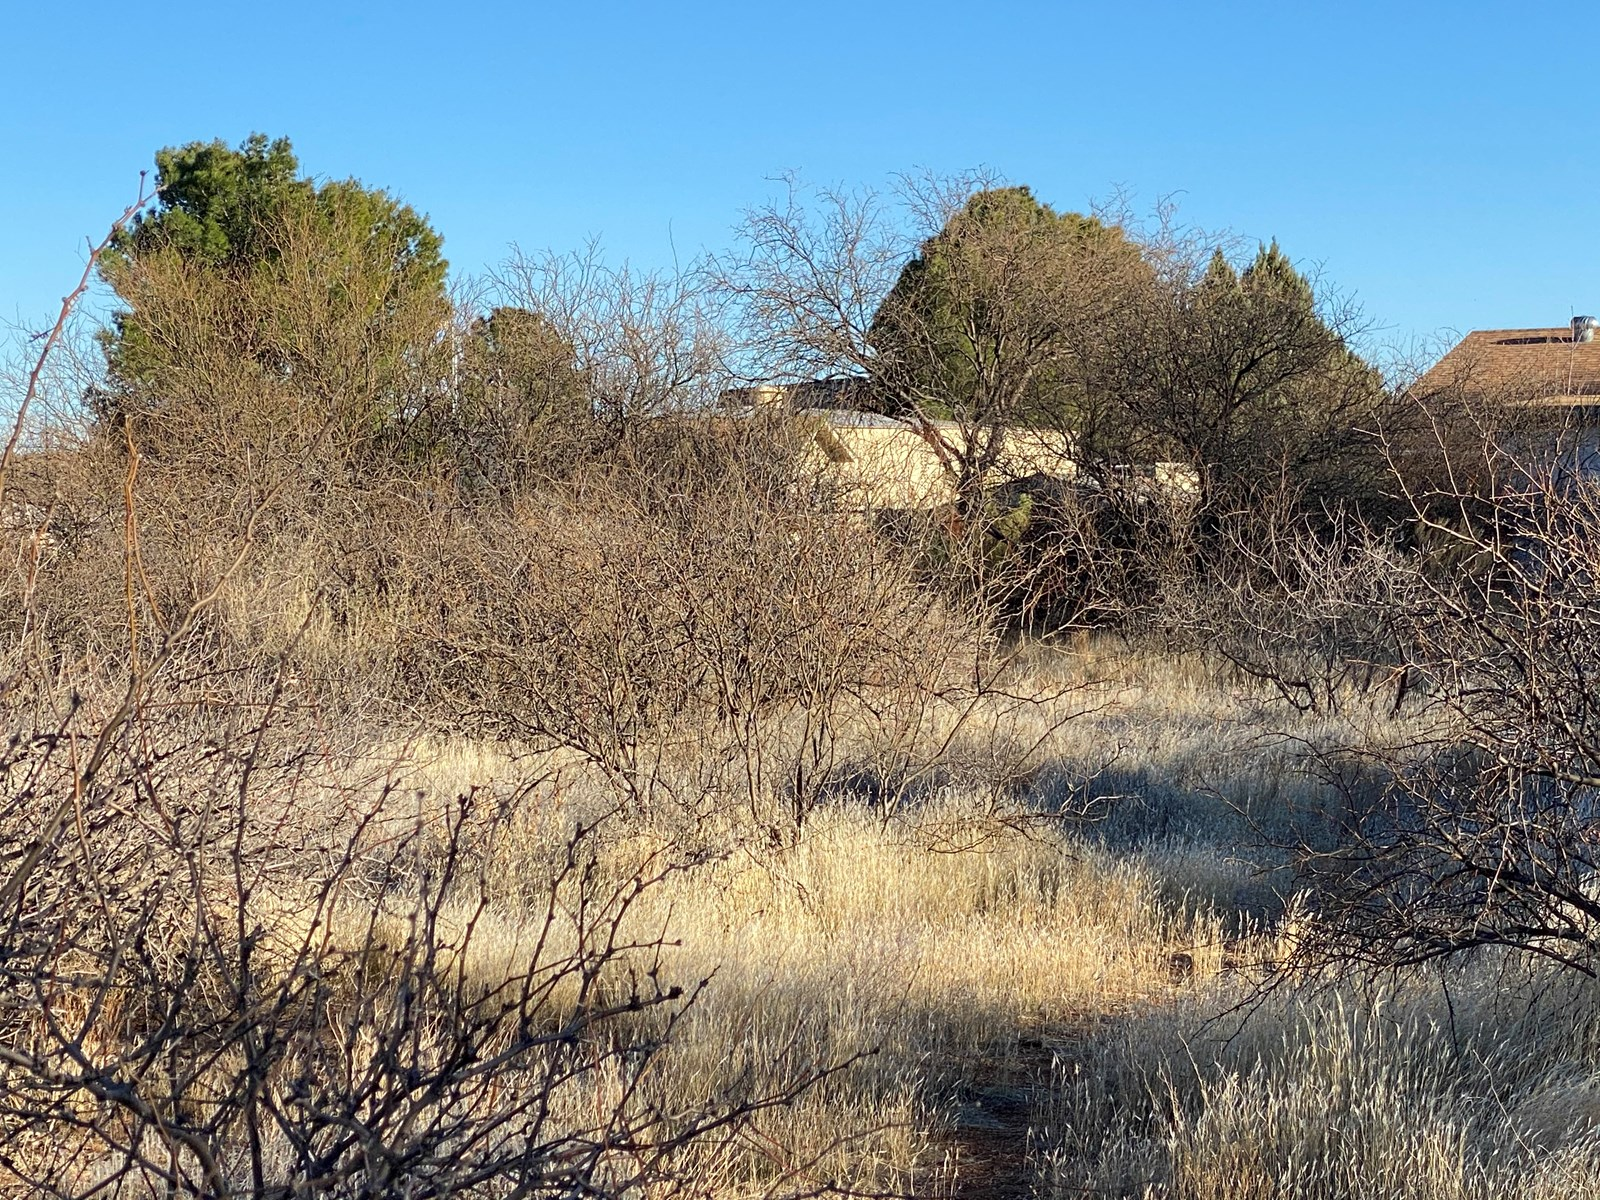 Building Lot for Sale in Cottonwood AZ Near Verde River